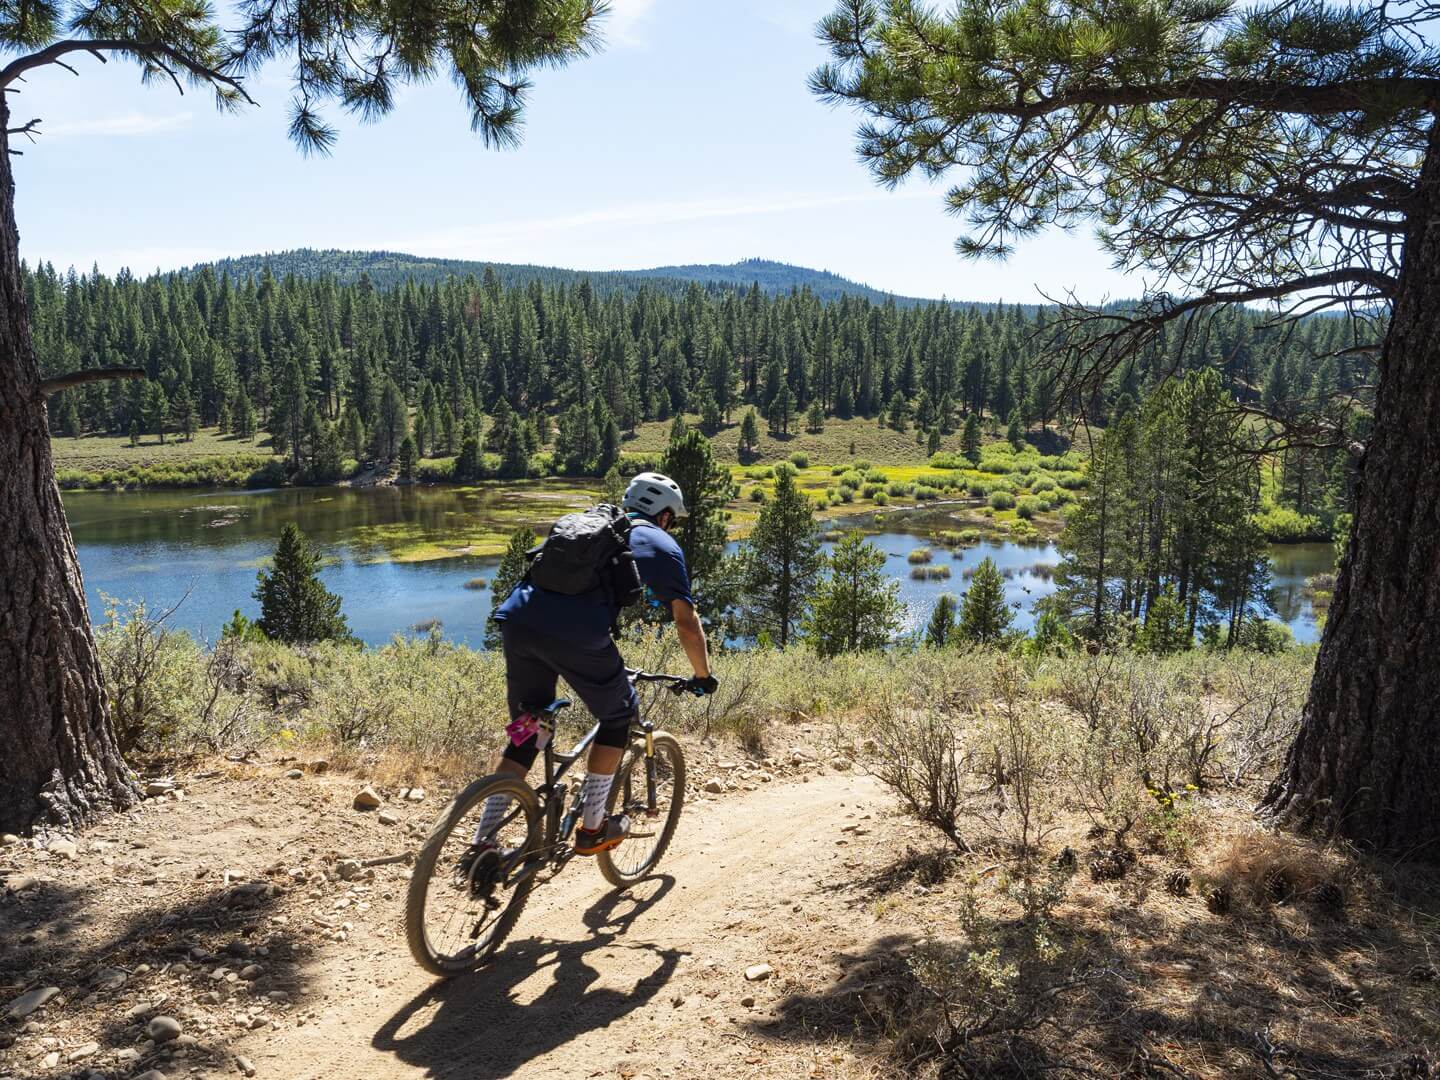 Mountain biker on Truckee Overland Emigrant Trail with lake in the distance